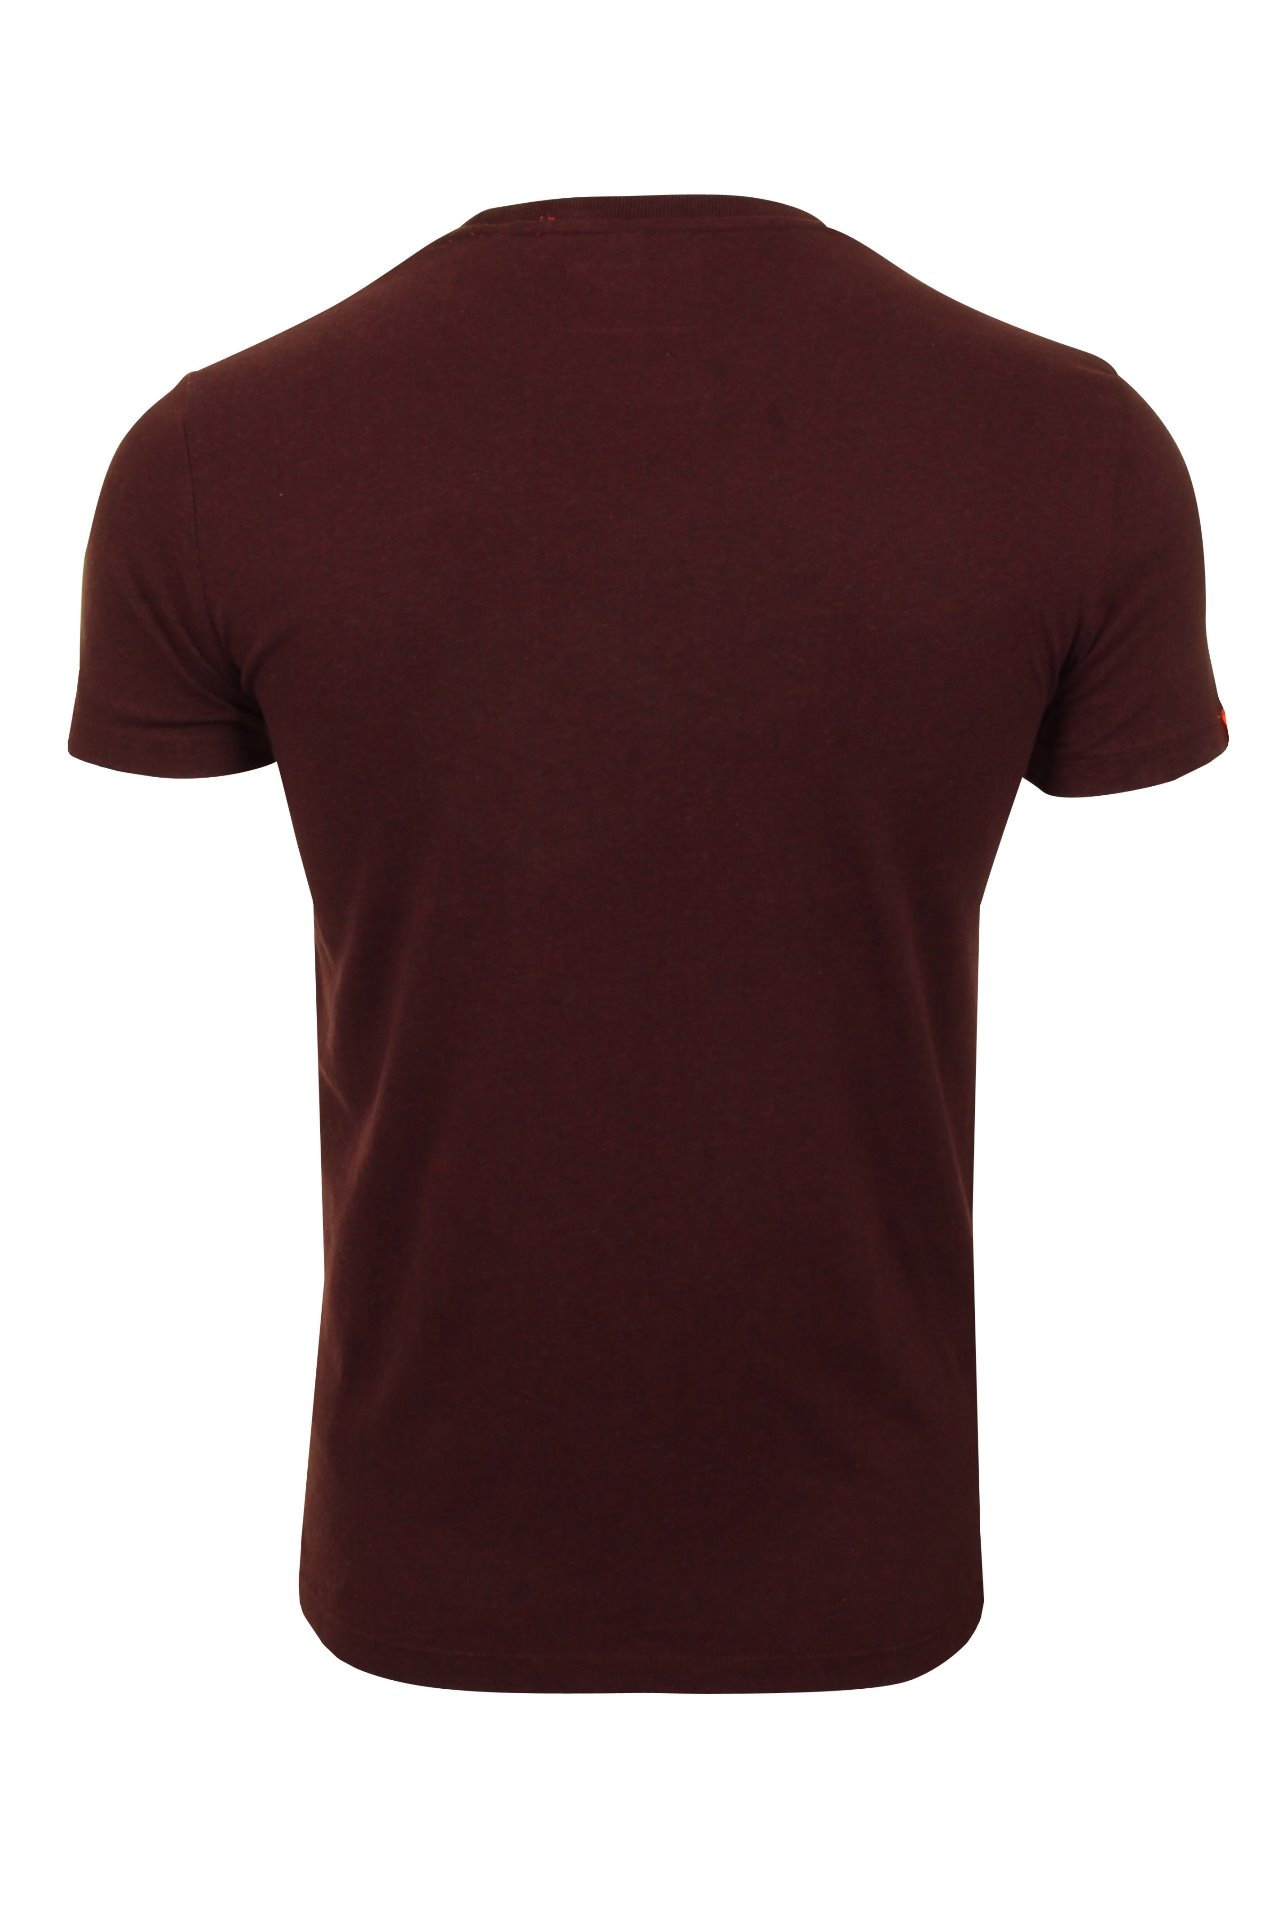 Superdry-Mens-T-Shirt-039-OL-Vintage-Embroidery-Tee-039-Short-Sleeved thumbnail 5